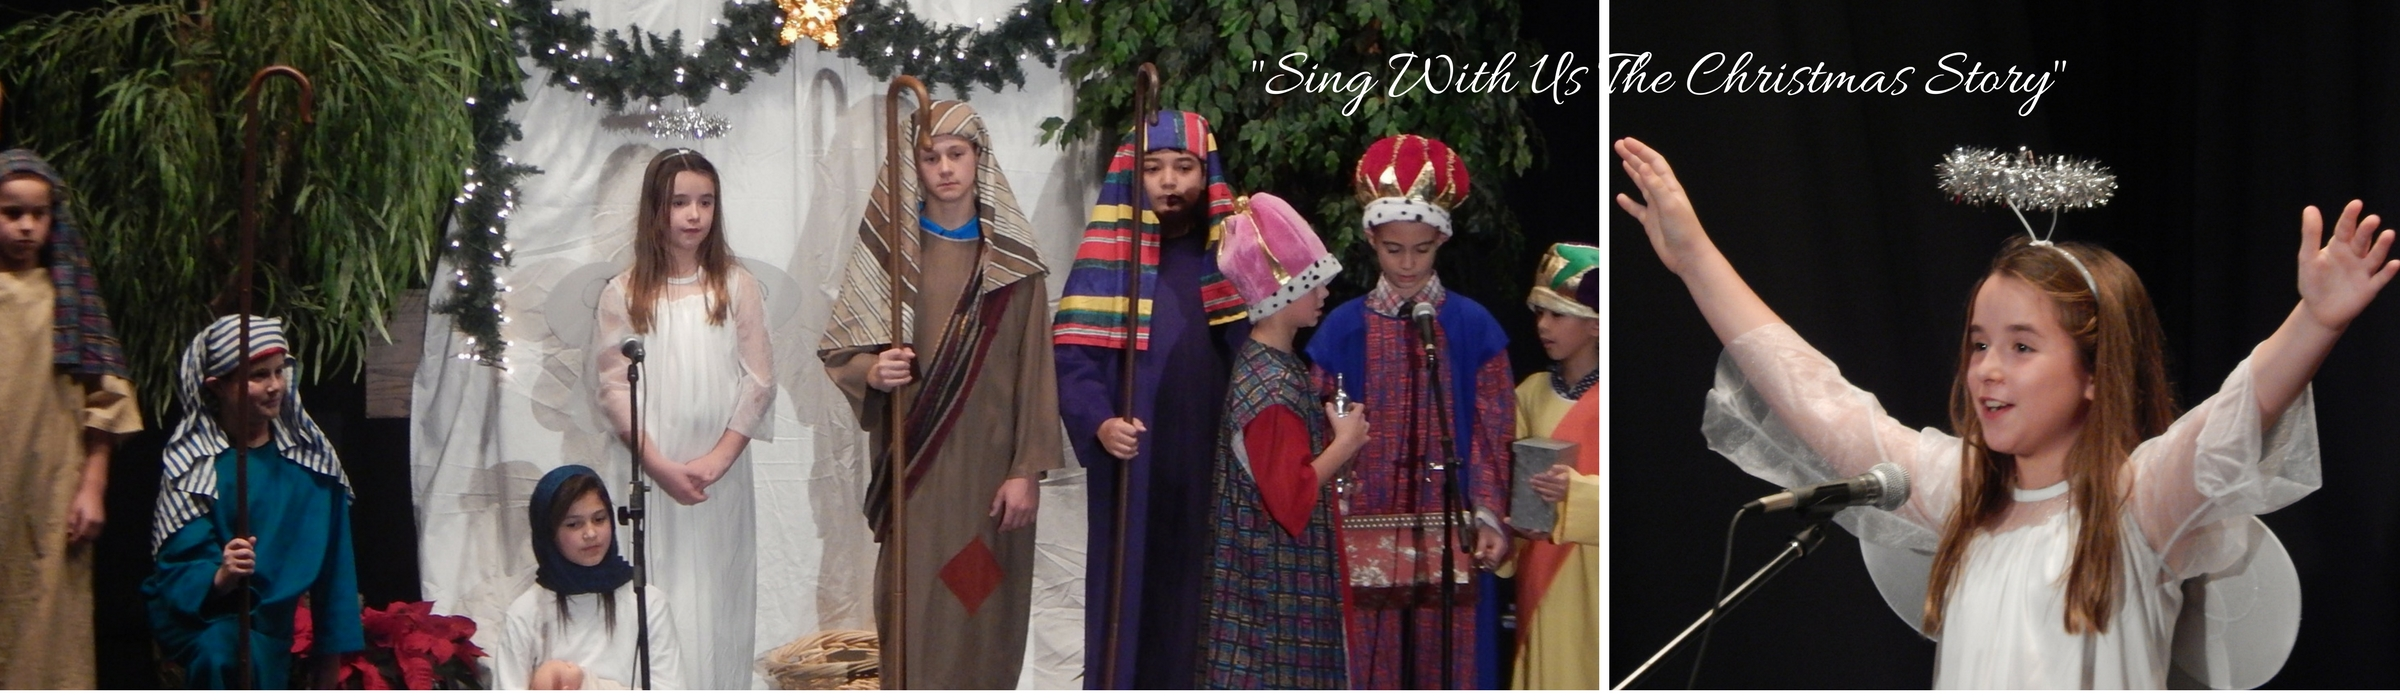 sing-with-us-the-christmas-story-1